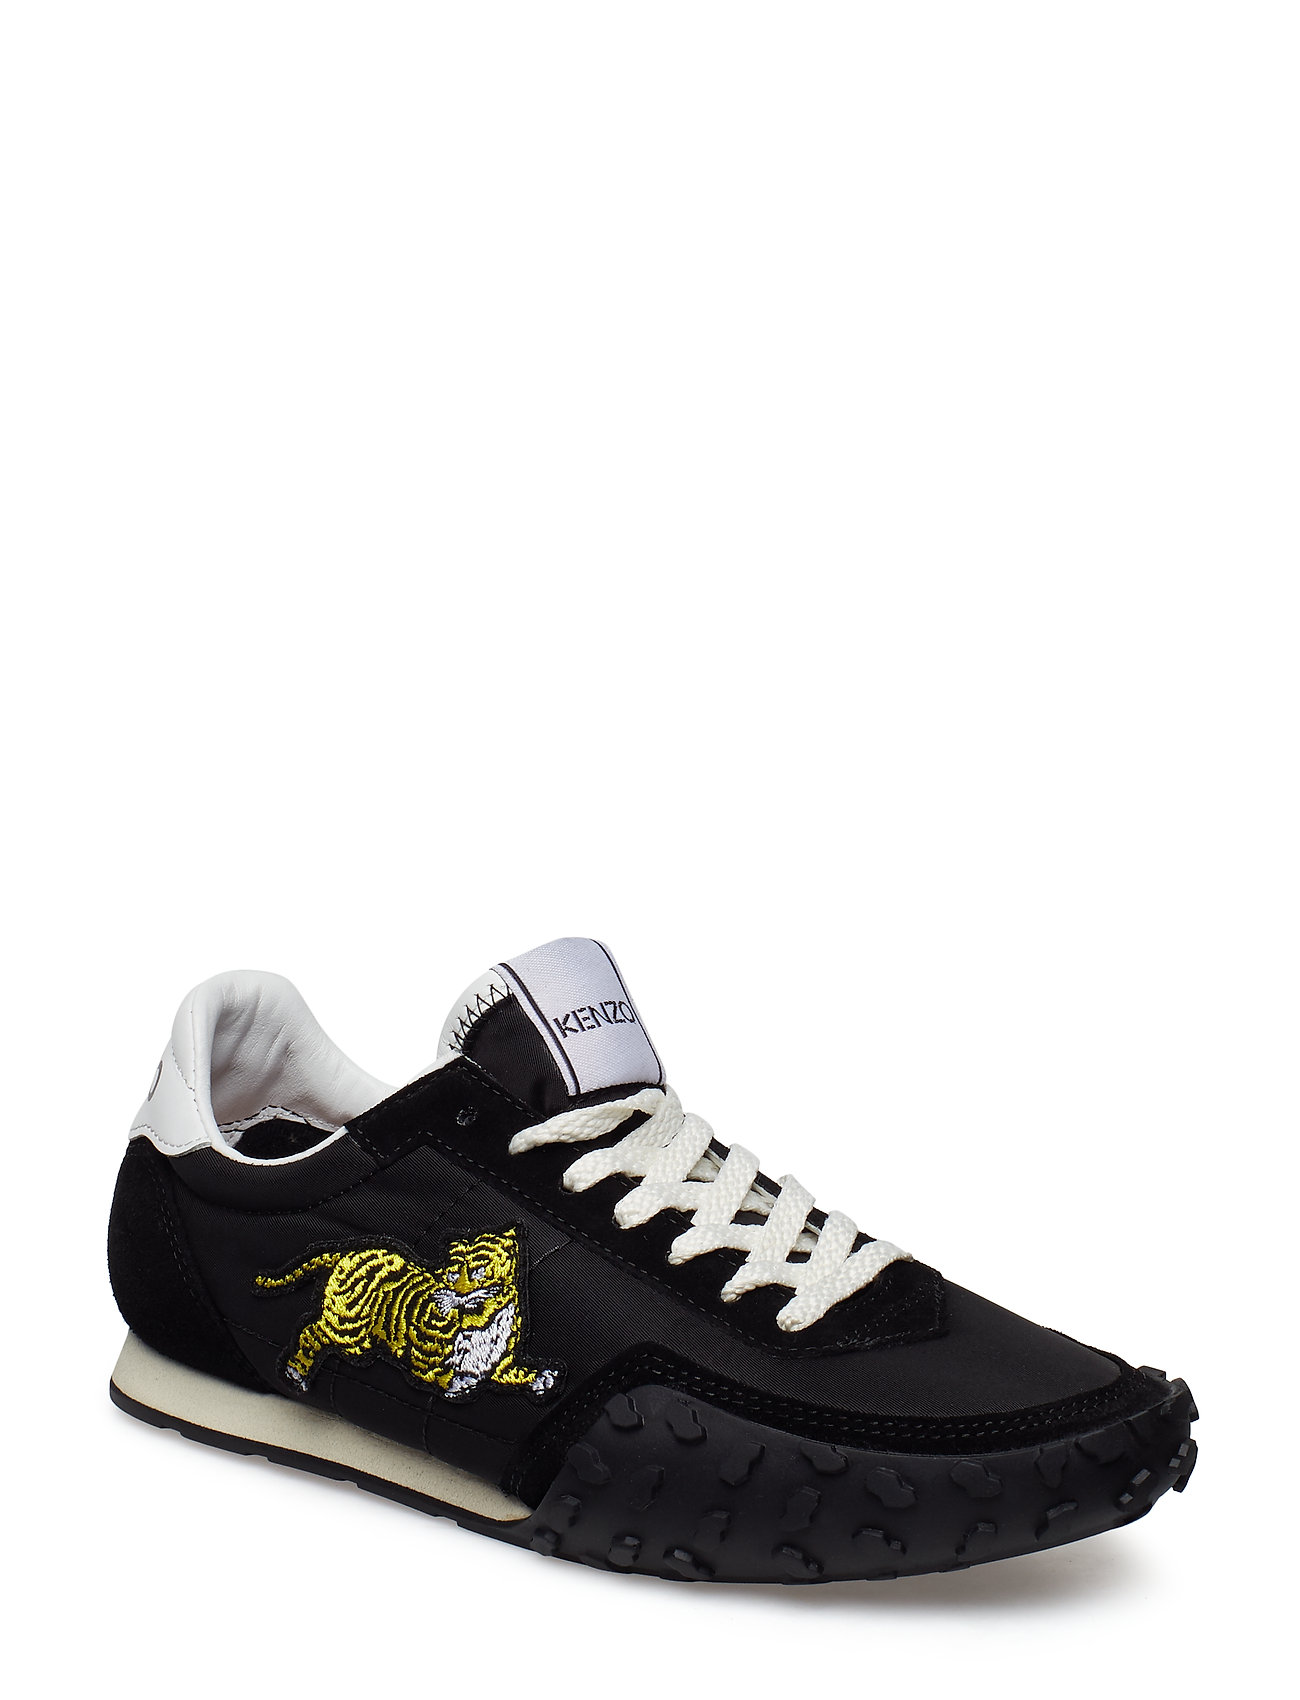 Image of Low Top Sneaker Special Low-top Sneakers Sort Kenzo (3091462301)